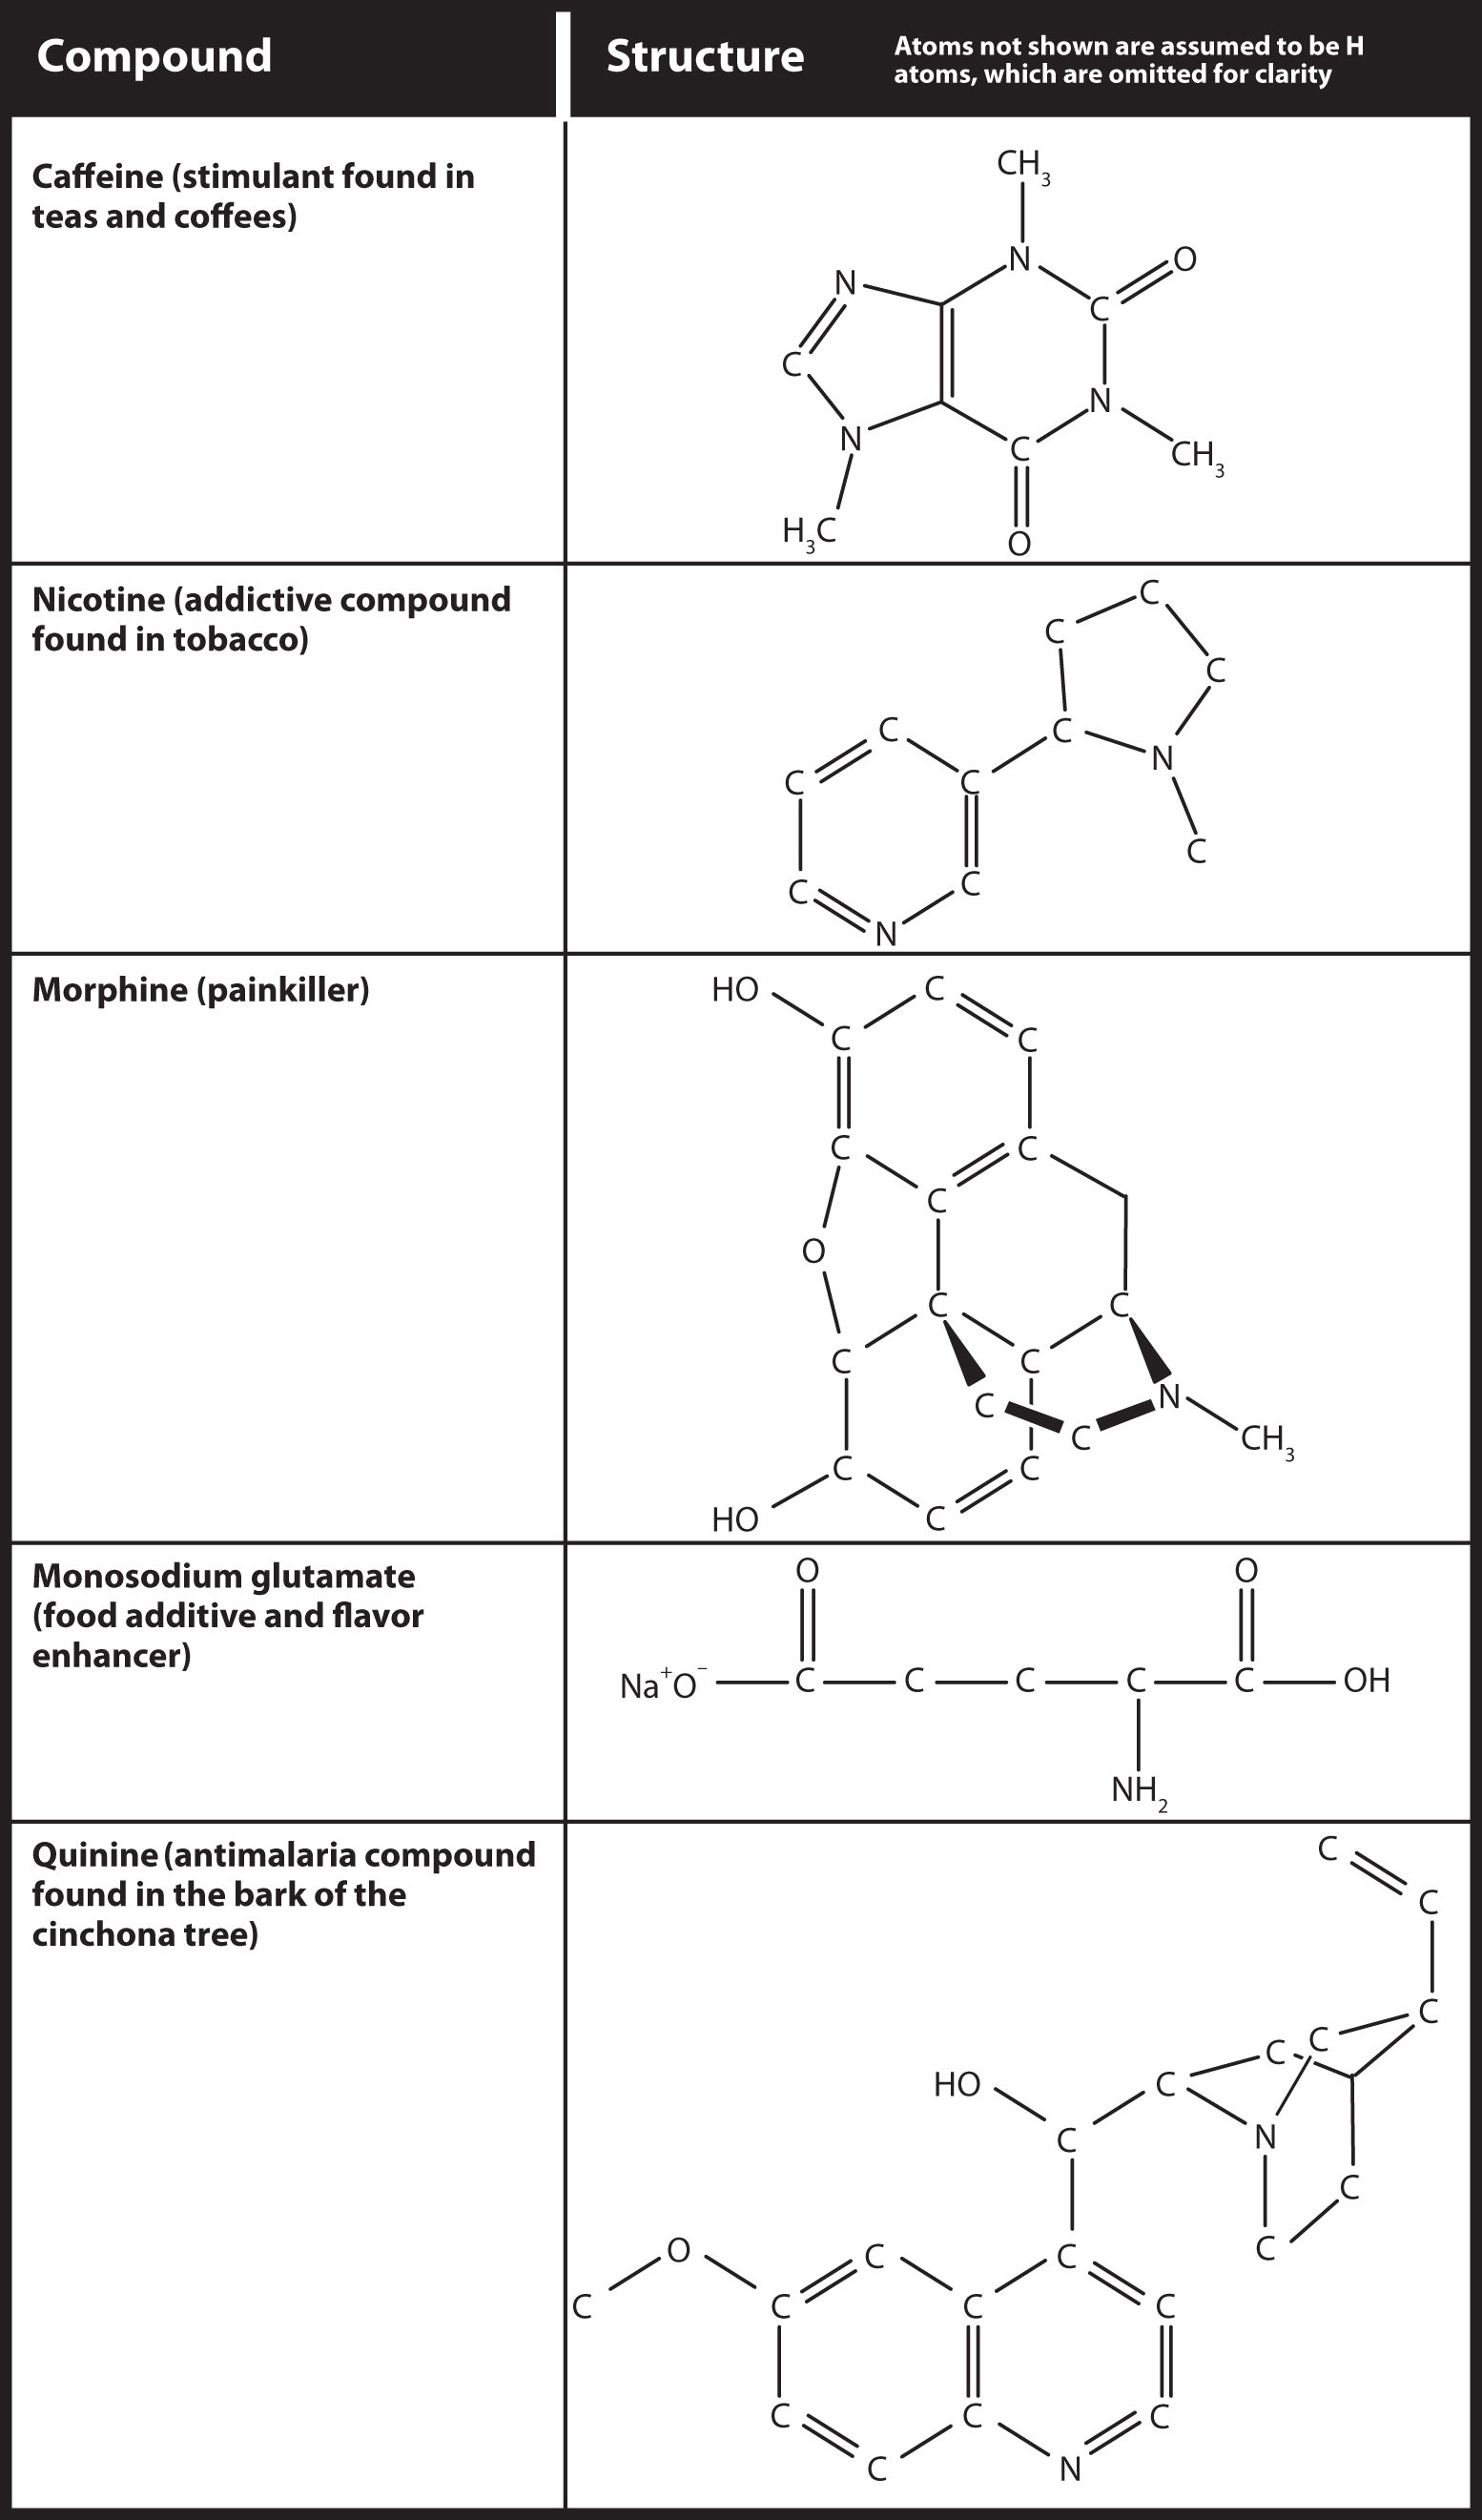 Some naturally occurring Nitrogen-containing compounds and their molecular structure. Compunds listed are caffeine, nicotine, morhine, monosodium glutamate and quinine.